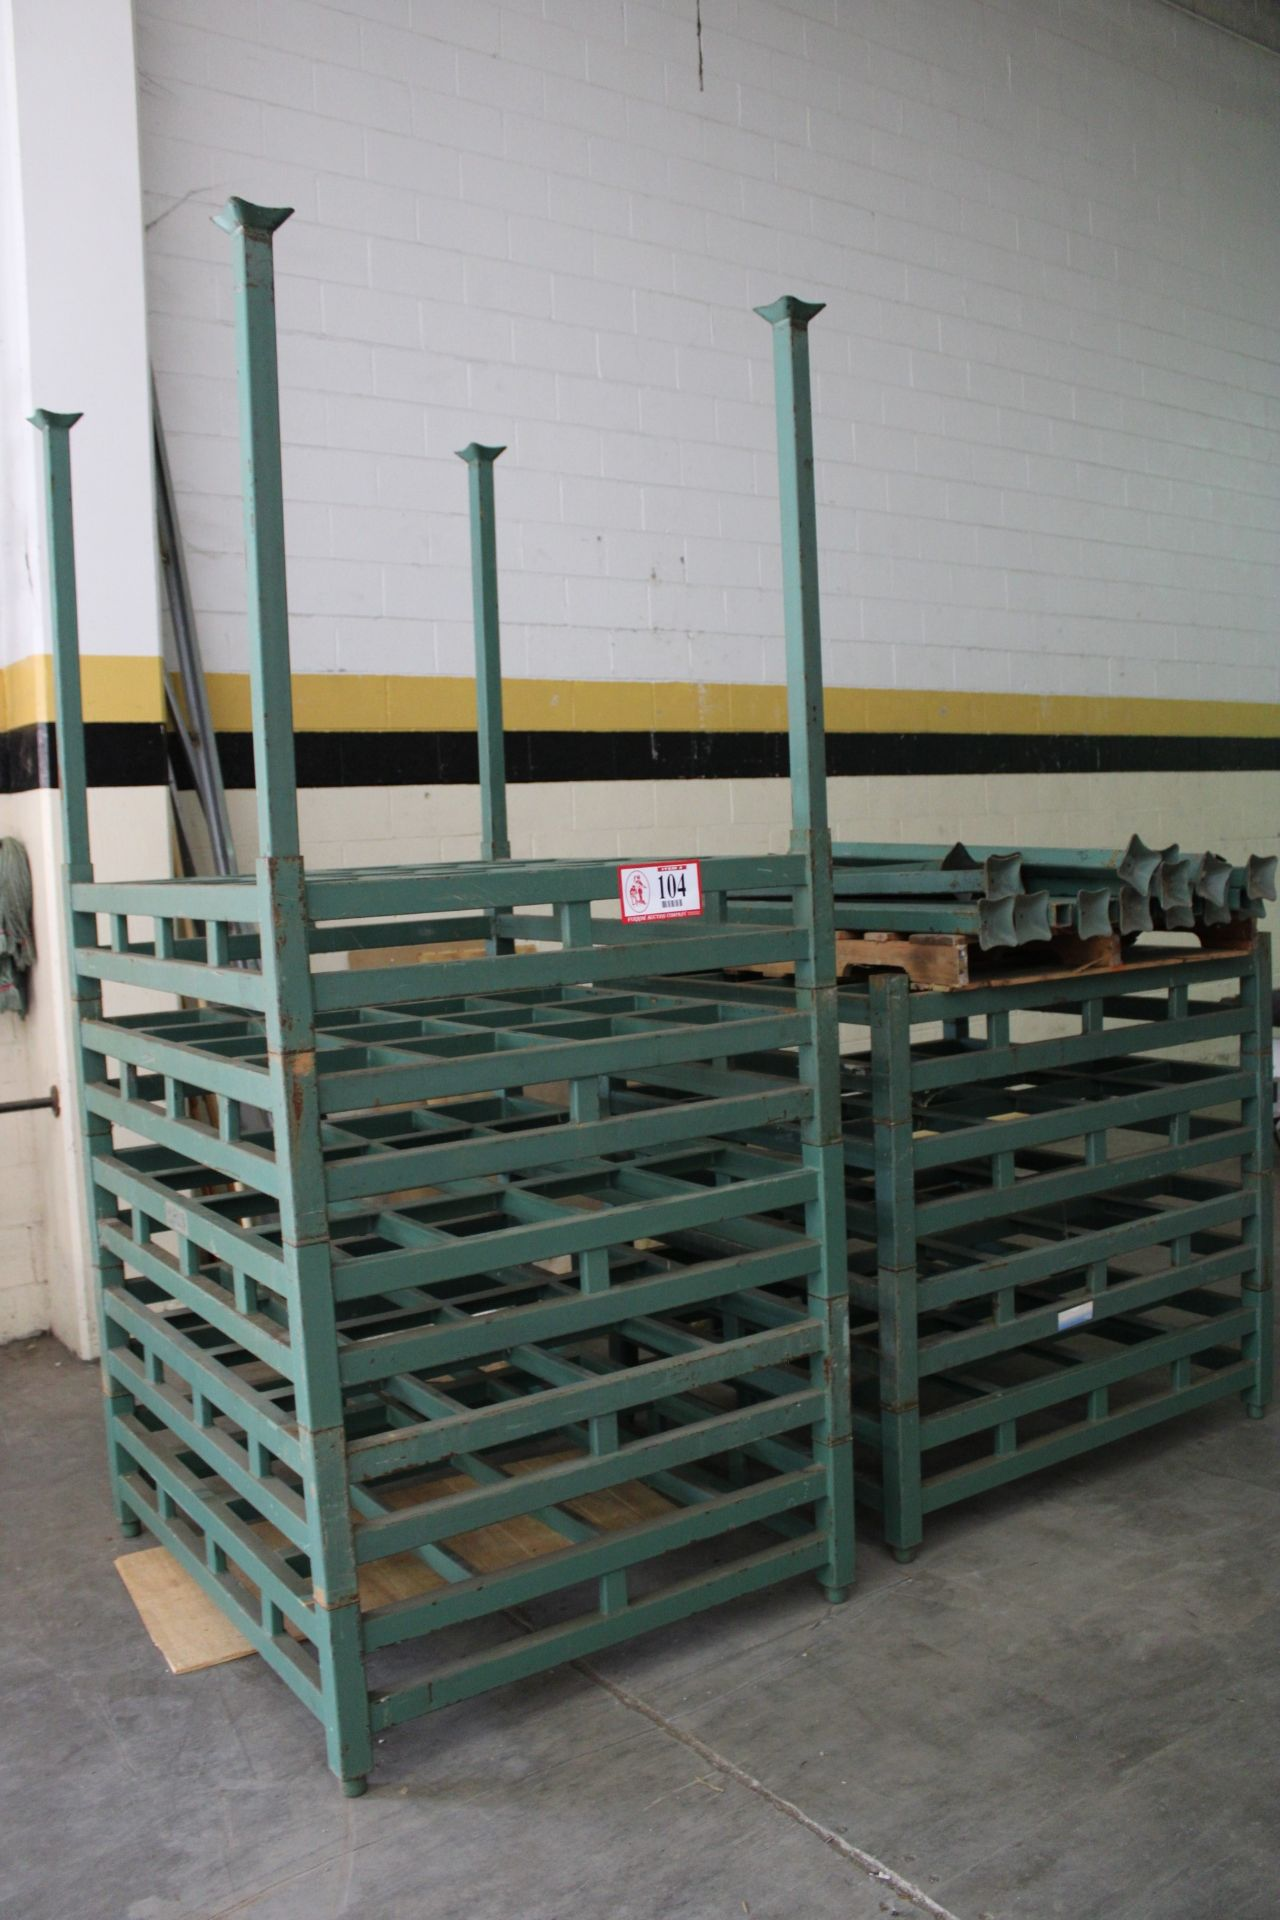 """QTY 11 -Derick-China Steel Stacking Racking, 5ft - 52"""" x 45"""" w/ Stacking Posts, Designed to hold two - Image 2 of 3"""